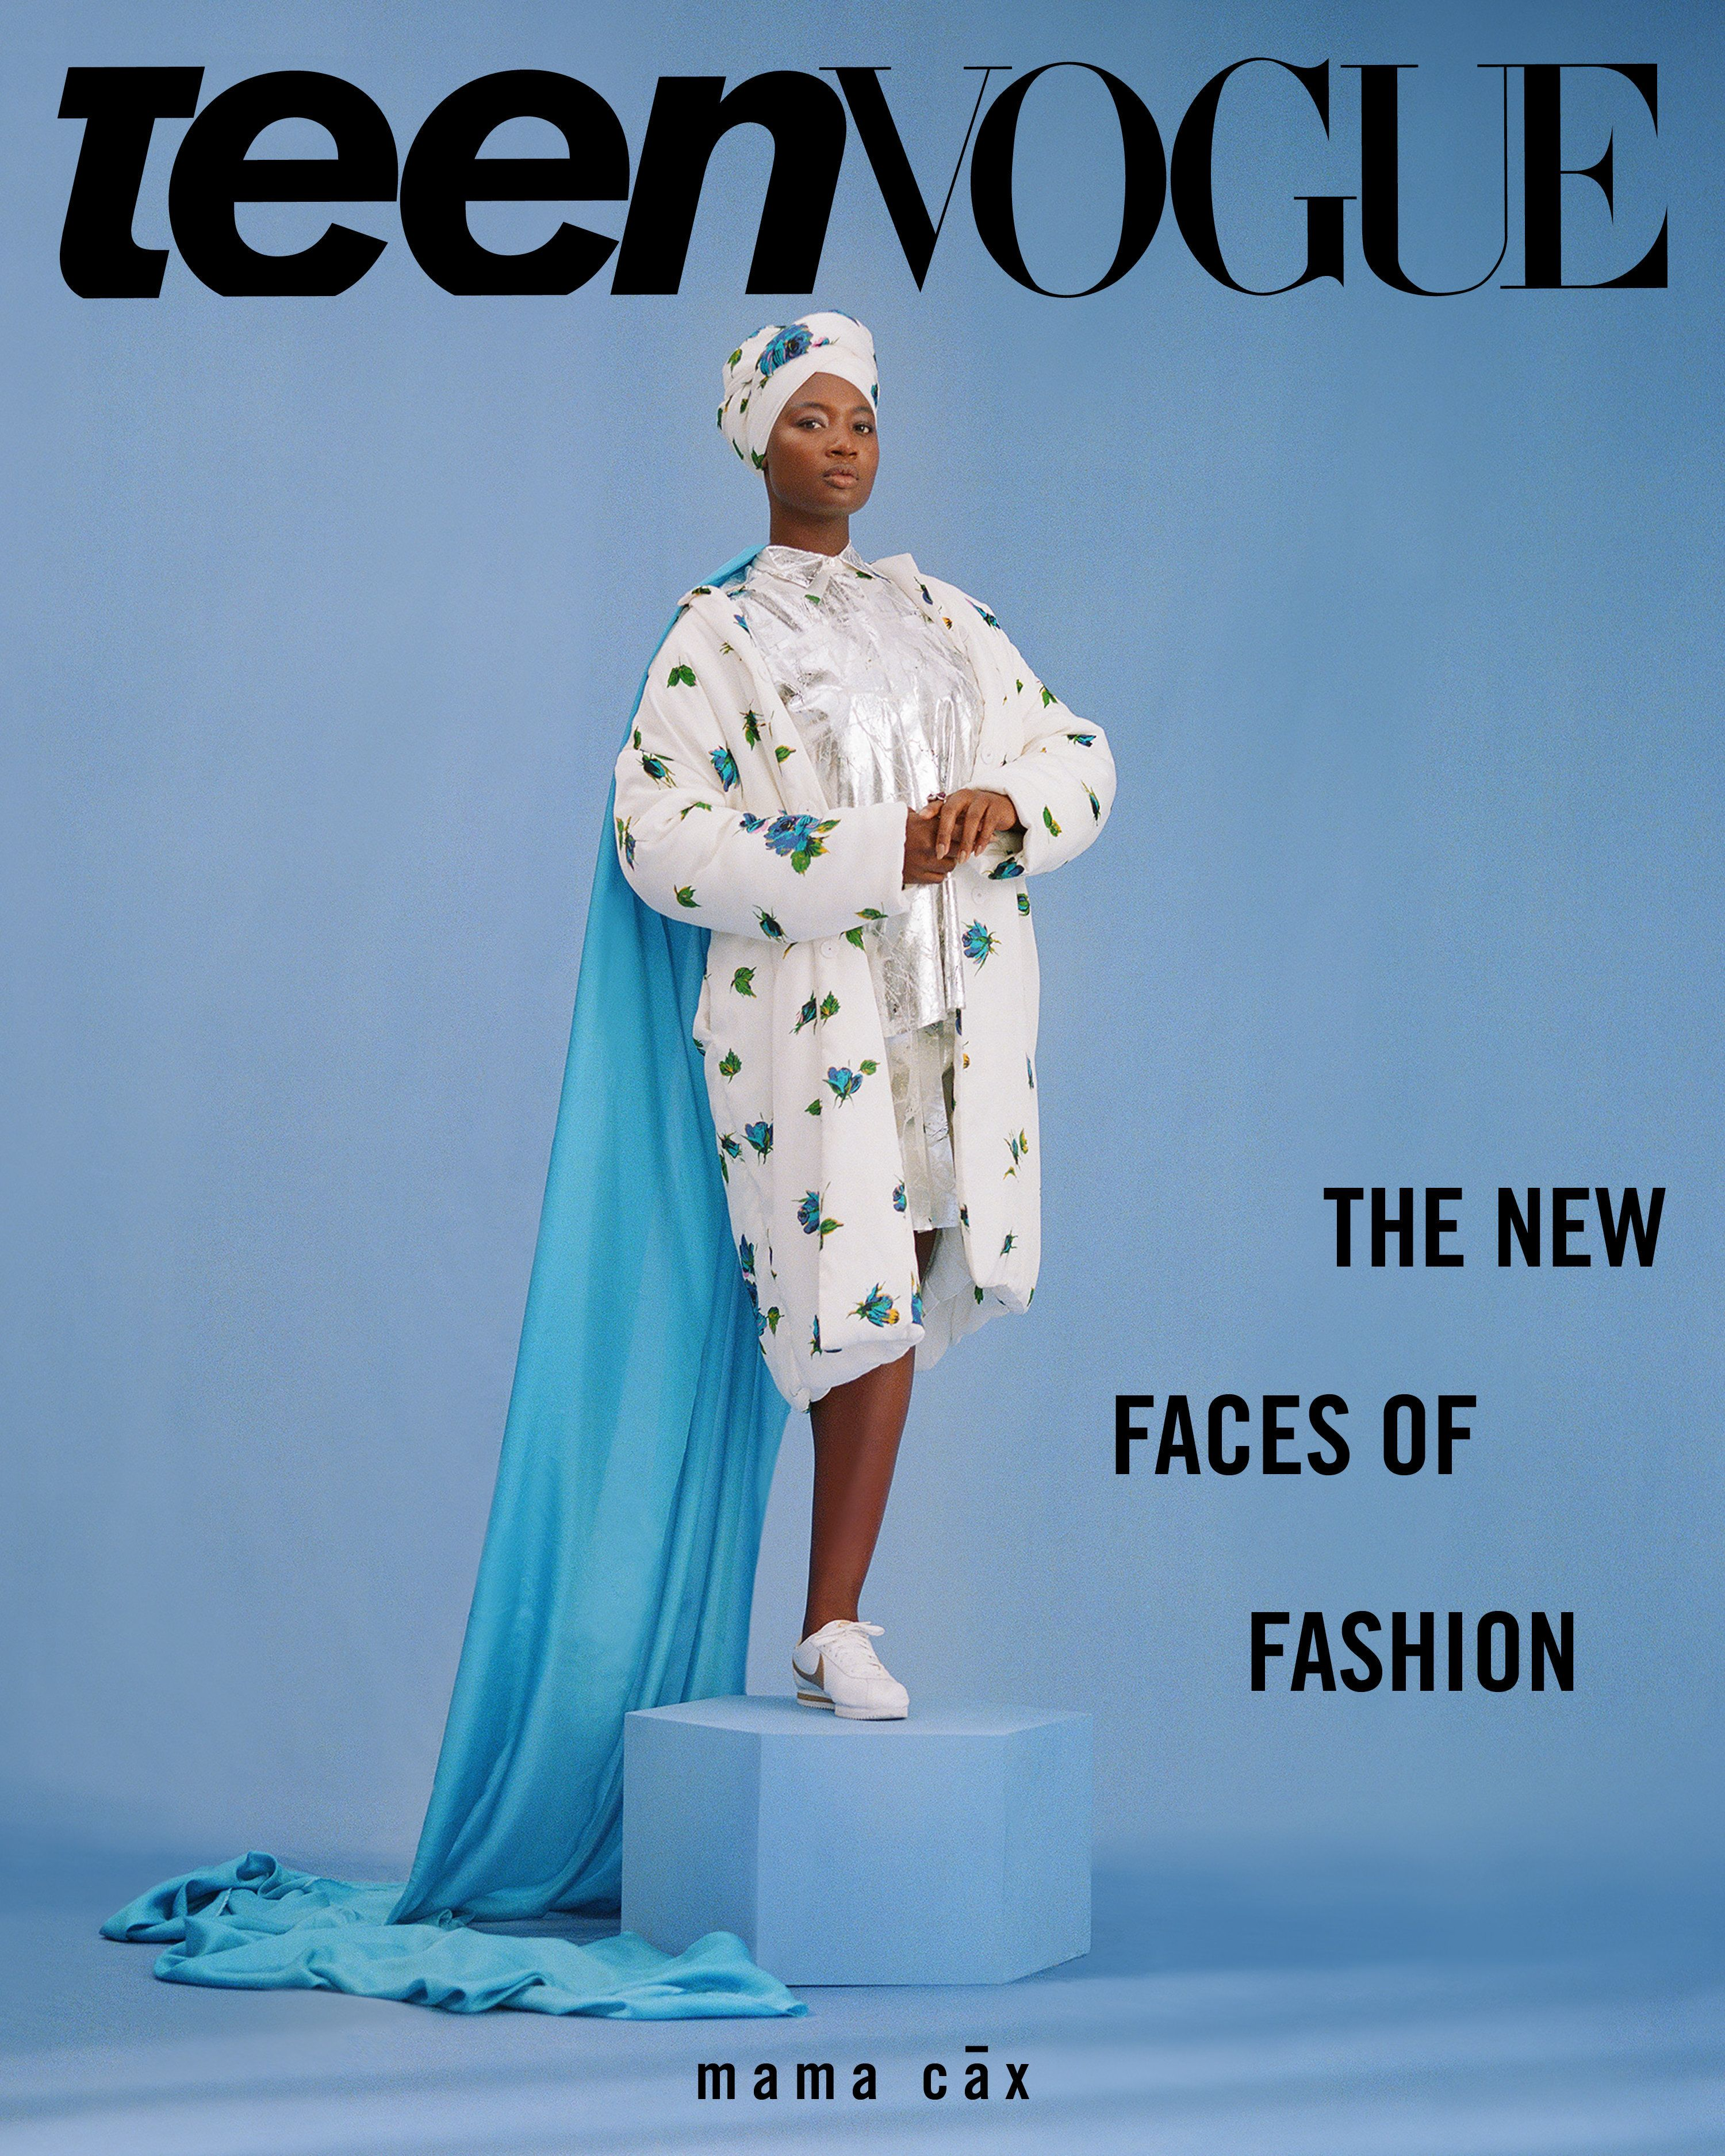 The Teen Vogue cover featuring model Mama Cax.